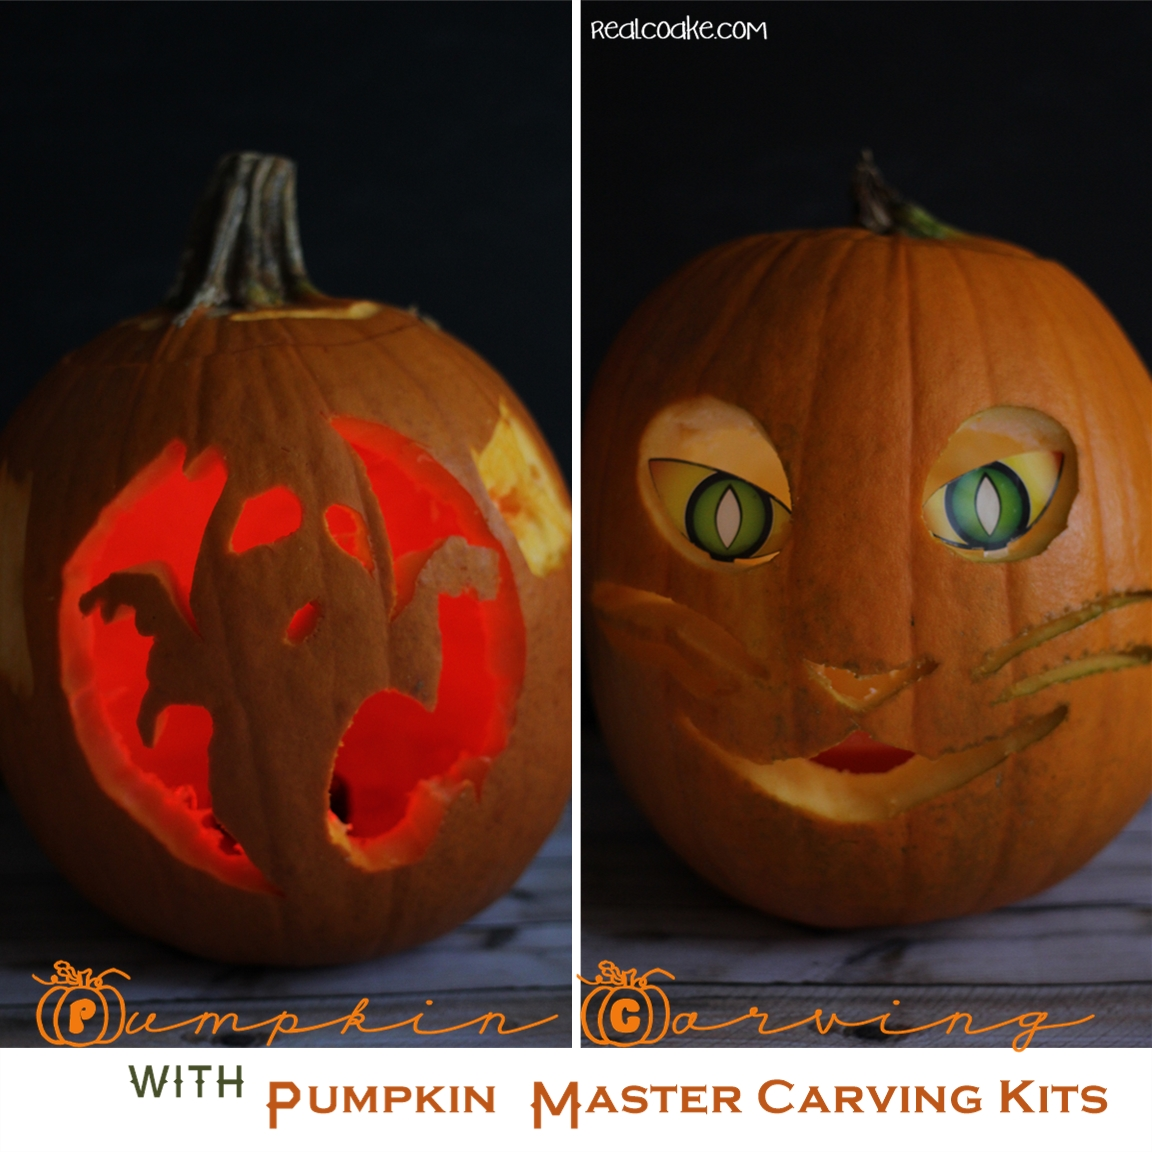 Pumpkin Carving Family Fun - The Real Thing with the Coake Family